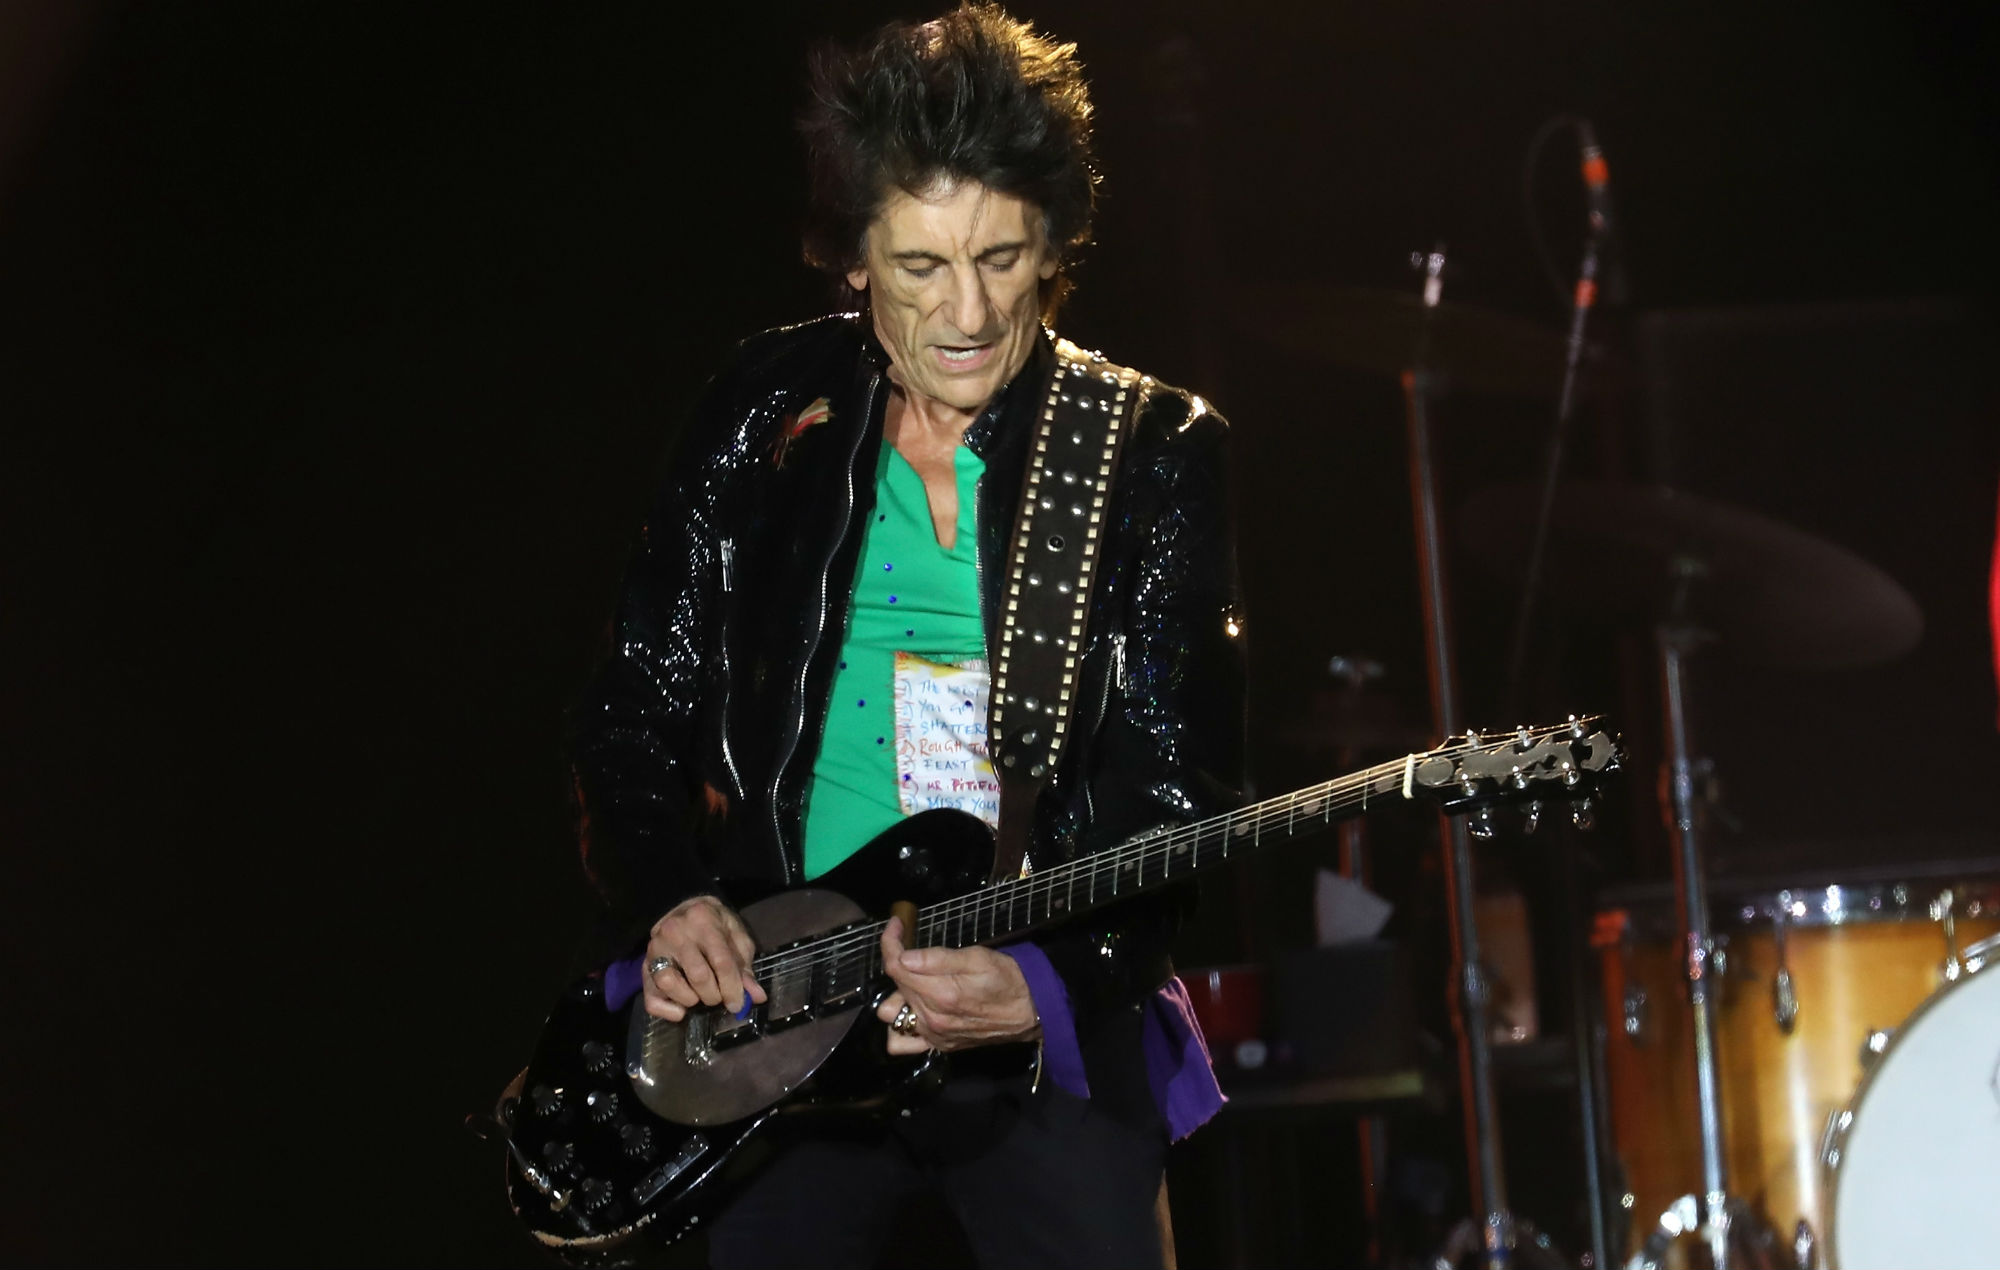 The Rolling Stones' Ronnie Wood took bunsen burner to smoke cocaine at parties